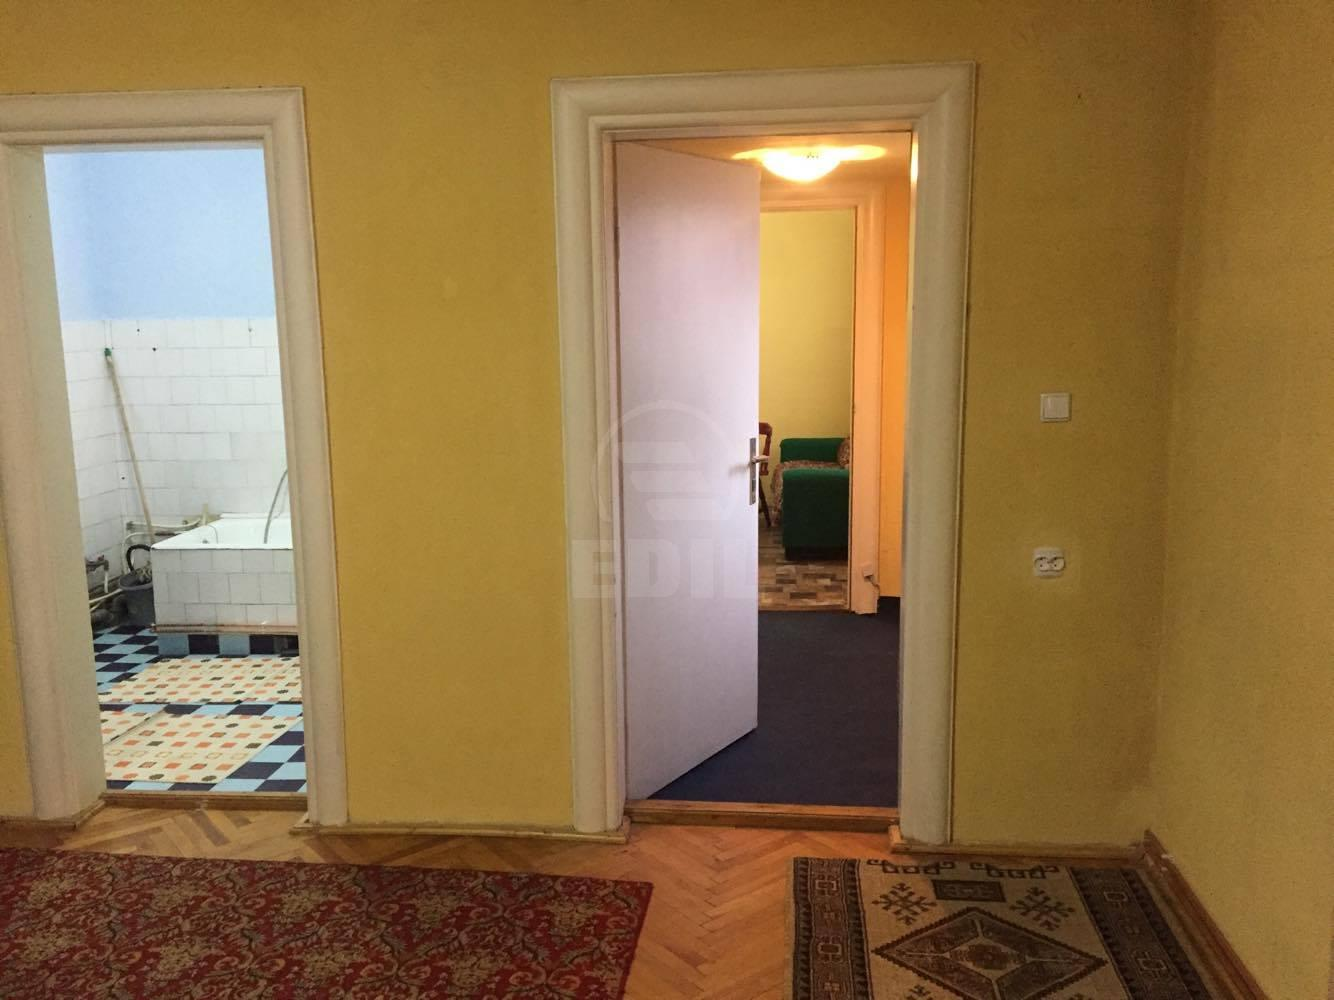 Apartment for rent 3 rooms, APCJ281600-4